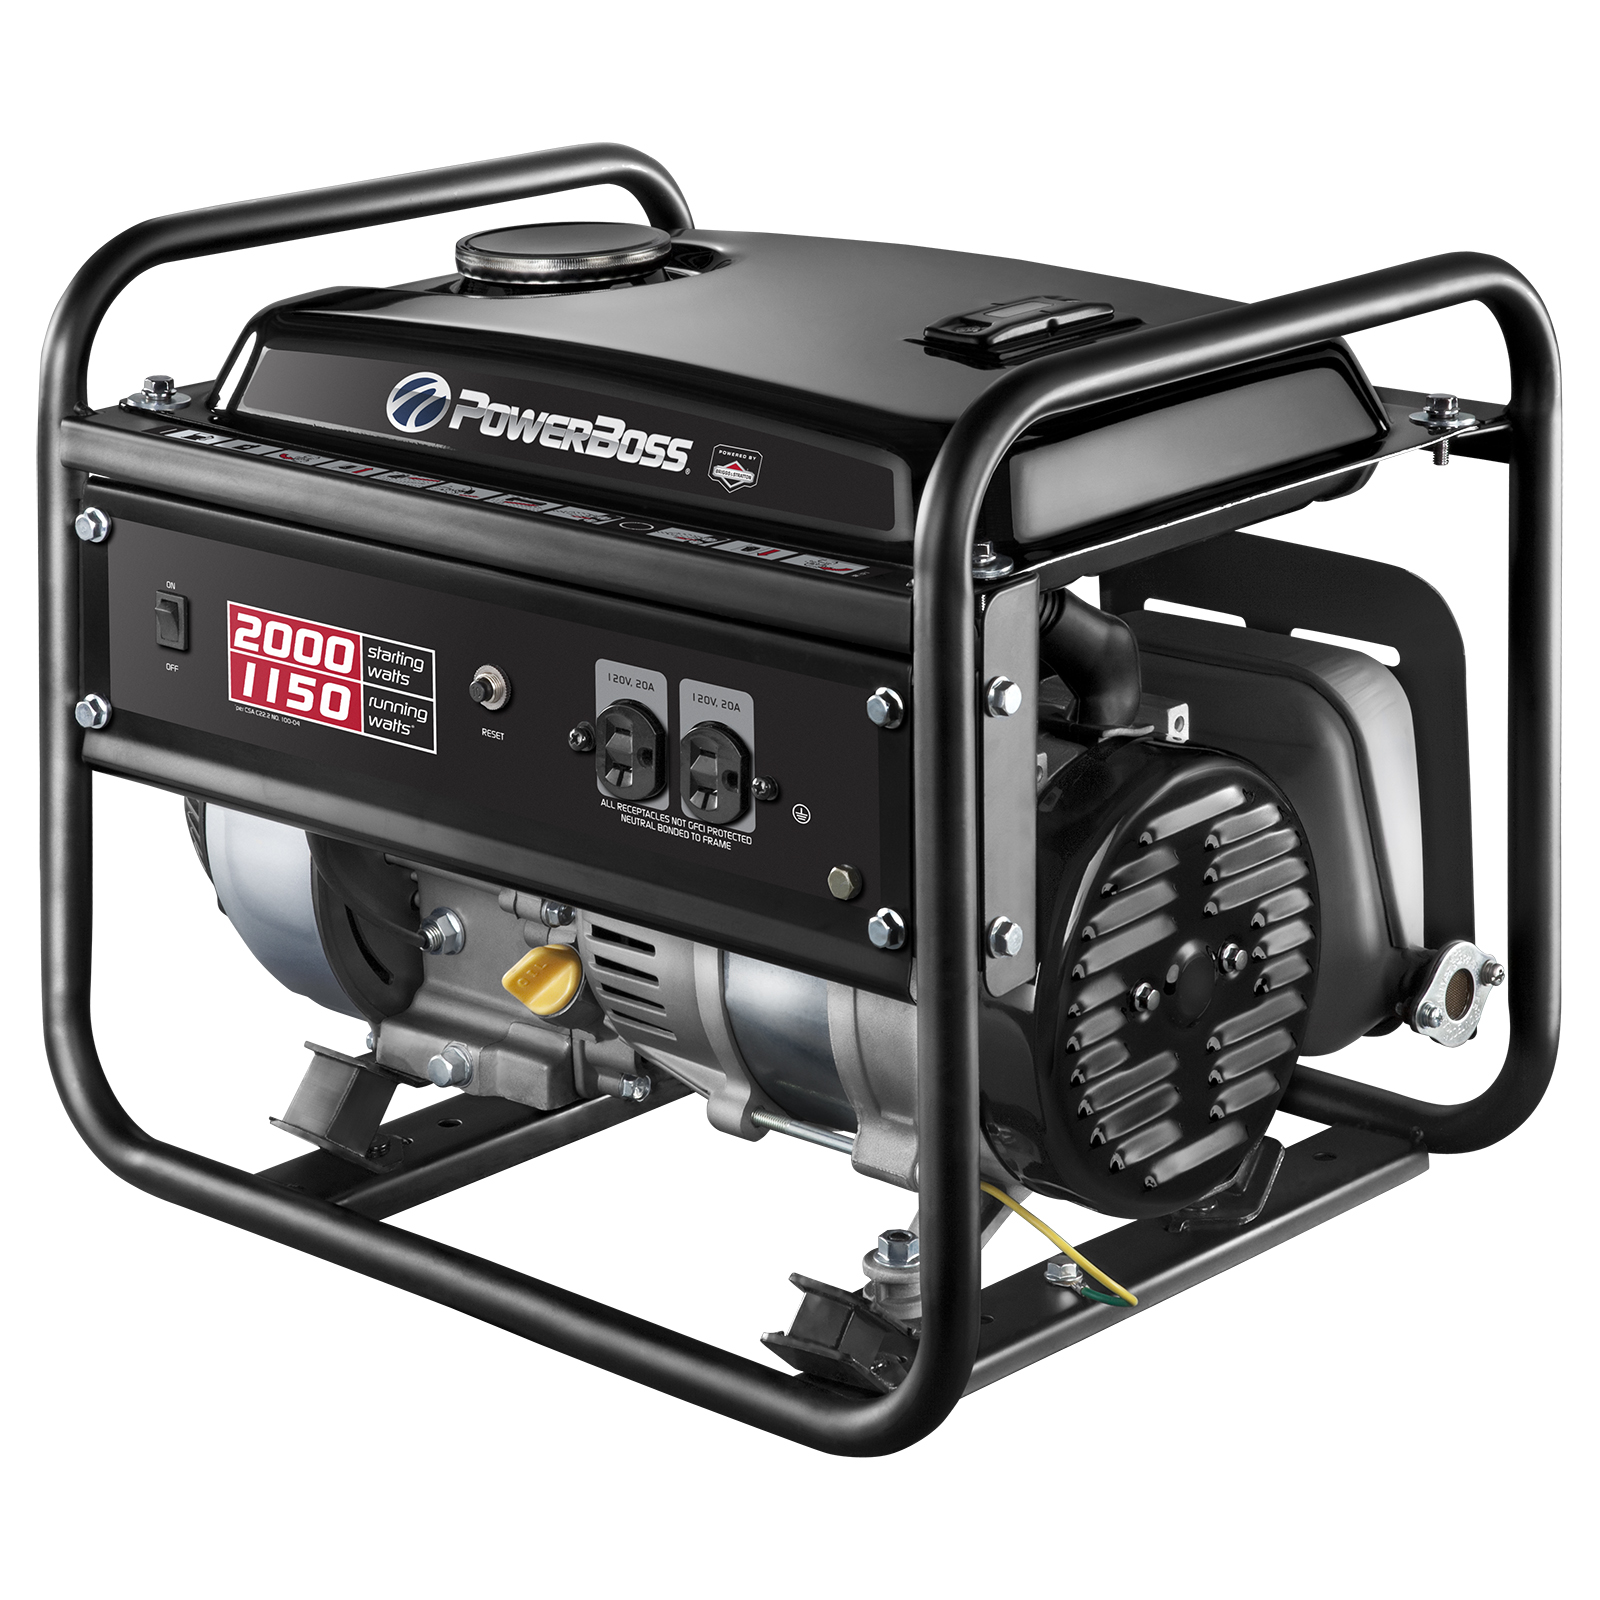 BRIGGS & STRATTON® POWERBOSS GENERATOR, 1-1/2 GALLONS, 120 VOLTS, 1,150 WATTS PartNumber: 07189103000P